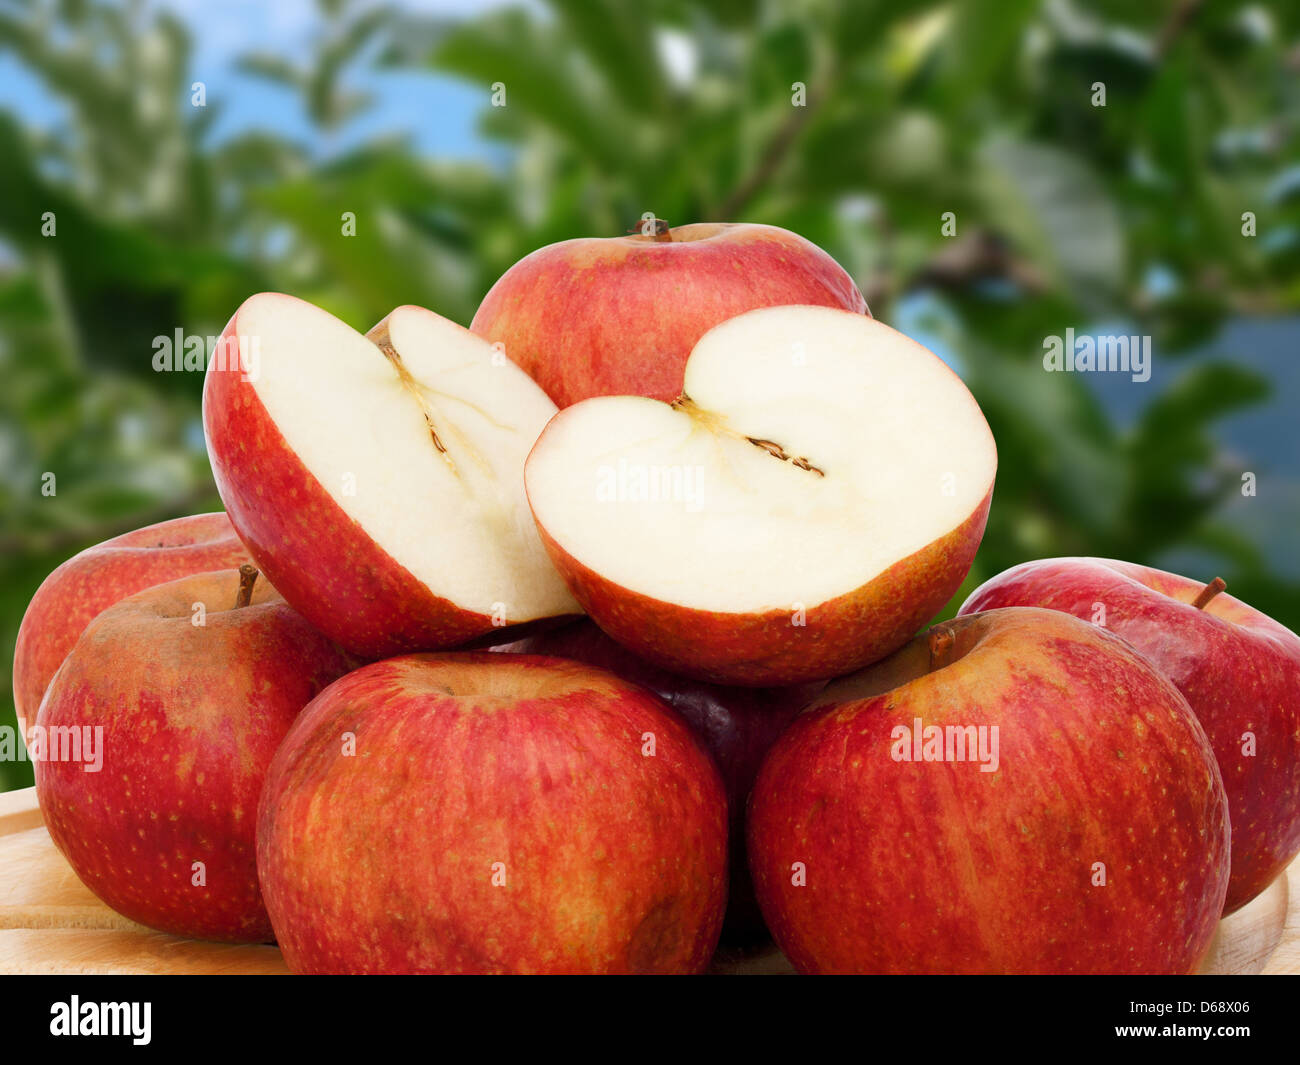 little apple ugly but good - Stock Image